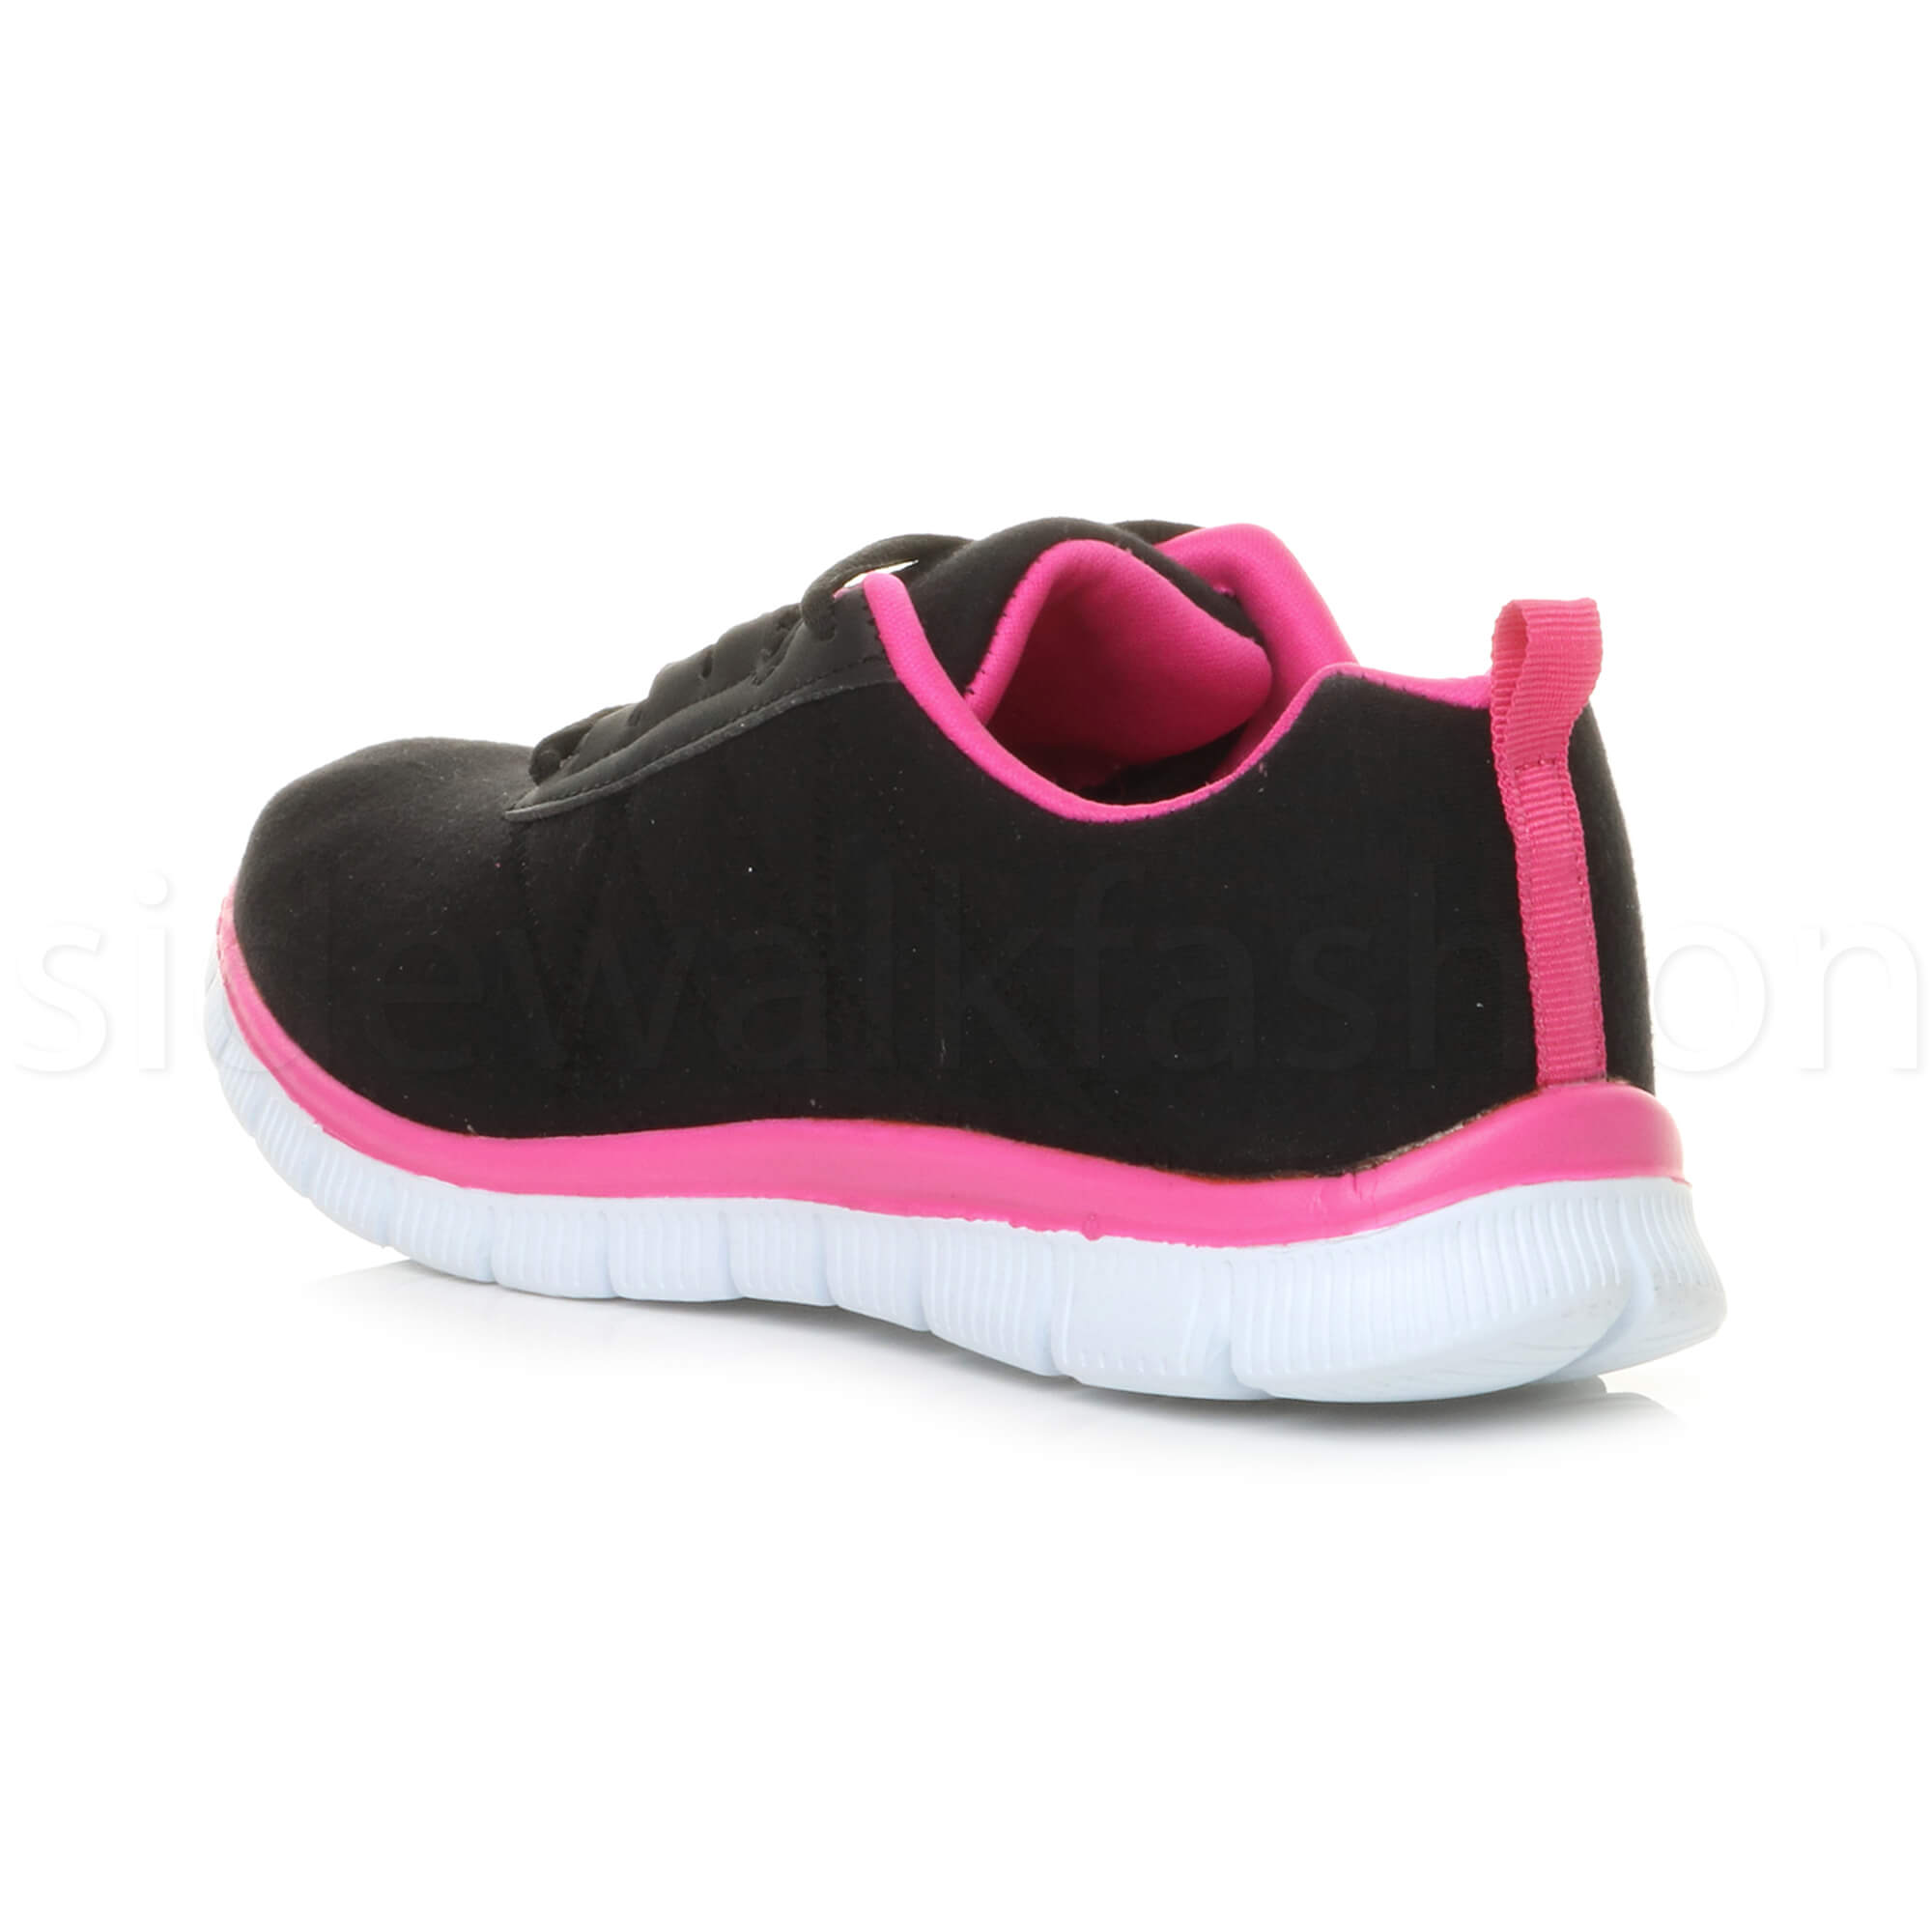 Womens-ladies-comfort-memory-foam-lace-up-trainers-activewear-sneakers-gym-shoes thumbnail 17